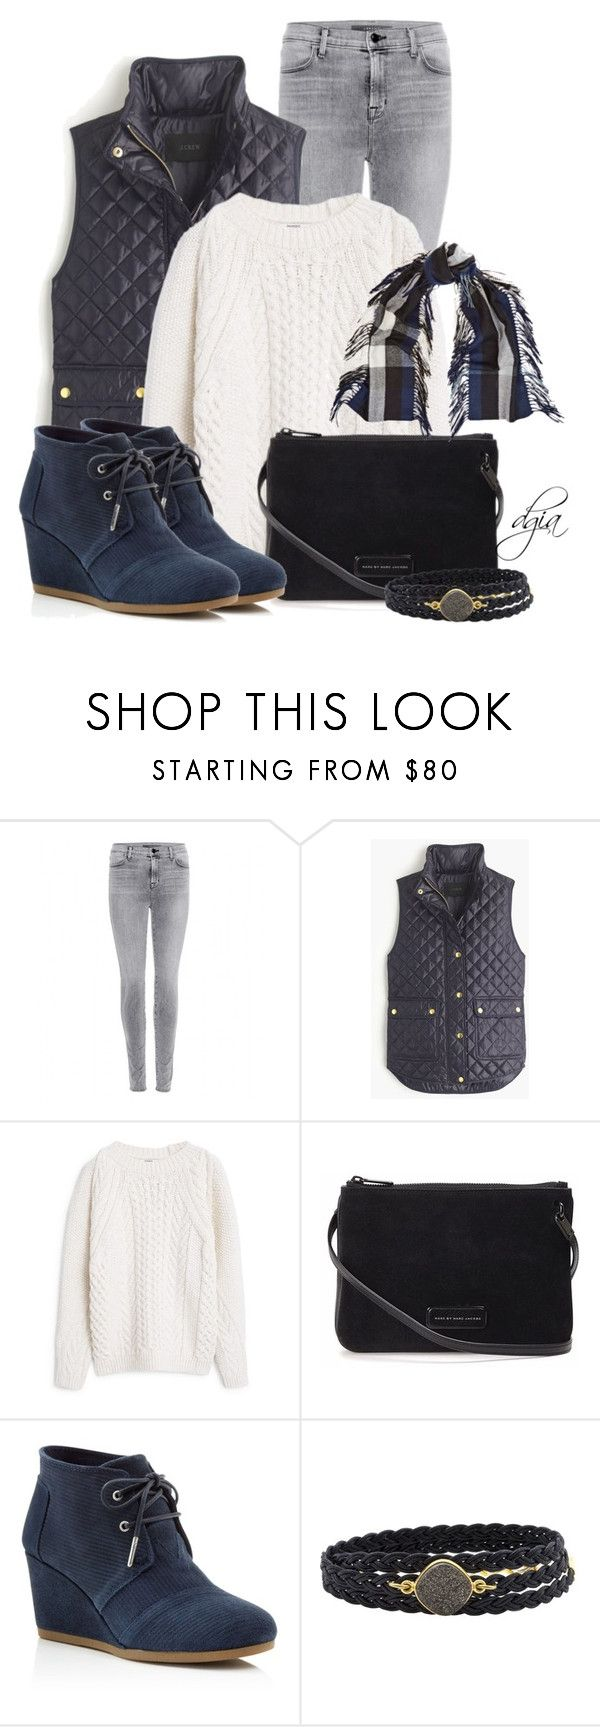 """""""Toms Wedge Booties"""" by dgia ❤ liked on Polyvore featuring J Brand, J.Crew, MANGO, Marc by Marc Jacobs, TOMS, Alexandra Beth Designs and Burberry"""